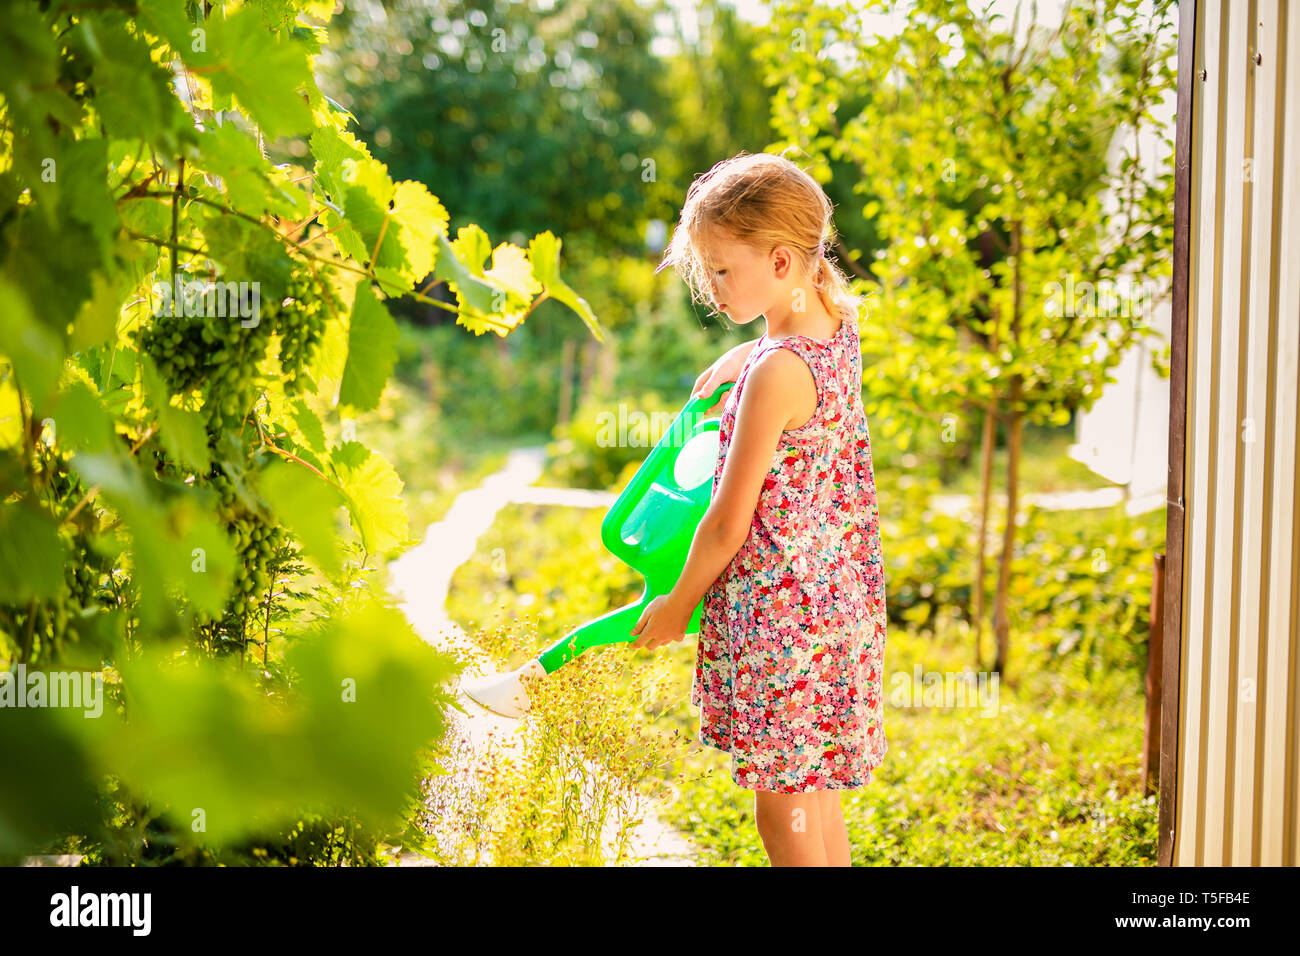 Blonde girl in pink dress watering flowers with green watering-can in the garden. Adorable child helping parents to grow vegetables. Activities with c Stock Photo